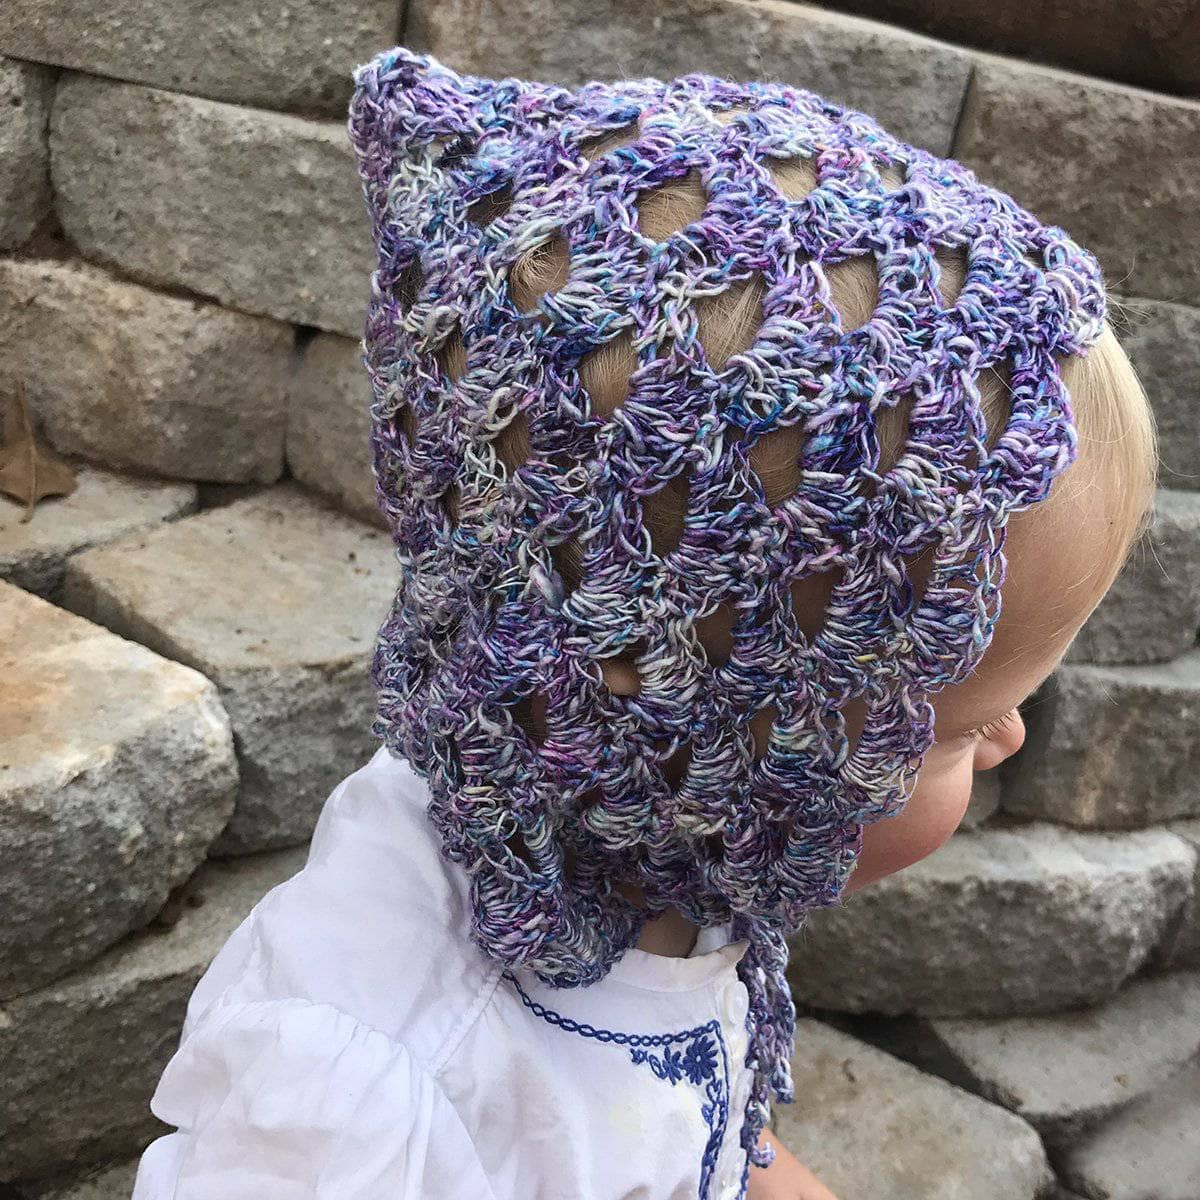 Baby wearing a purple Pixie Bonnet in front of a stone wall